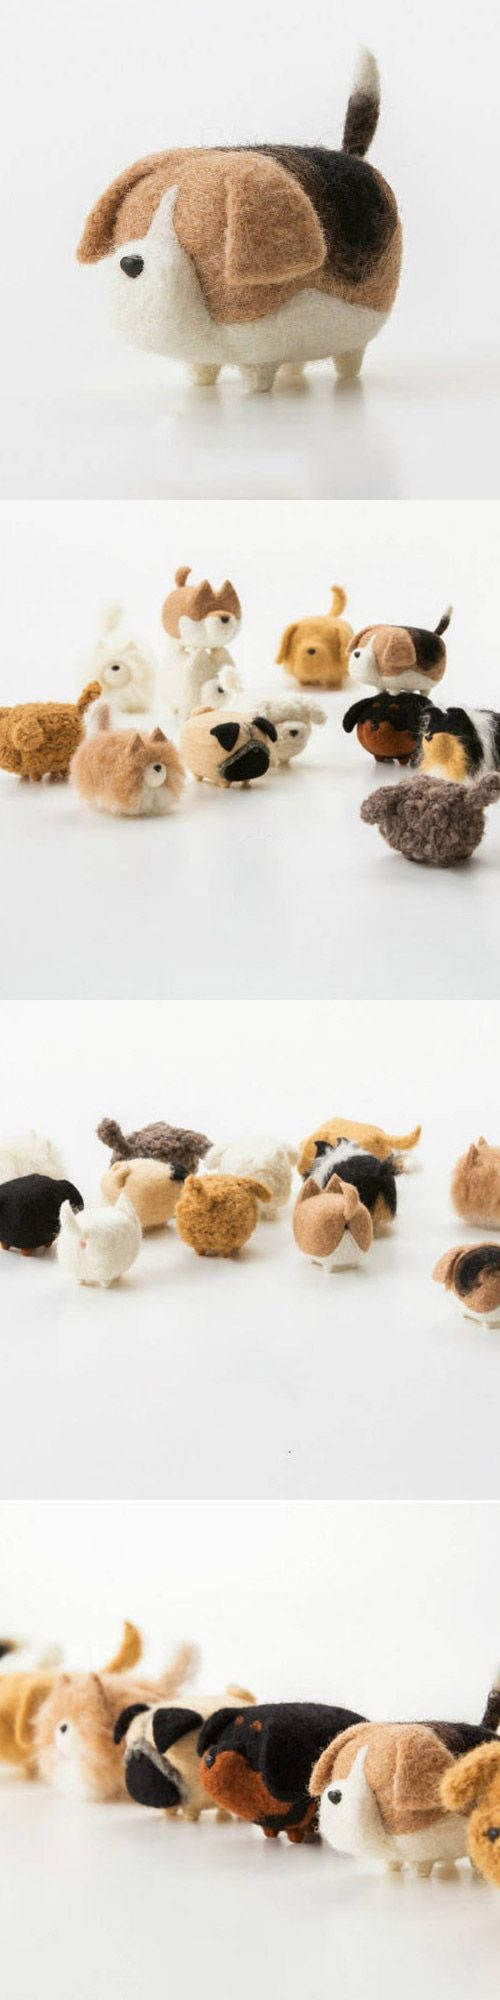 Handmade felted felting project cute animal Bloodhound dogs puppy felted wool doll